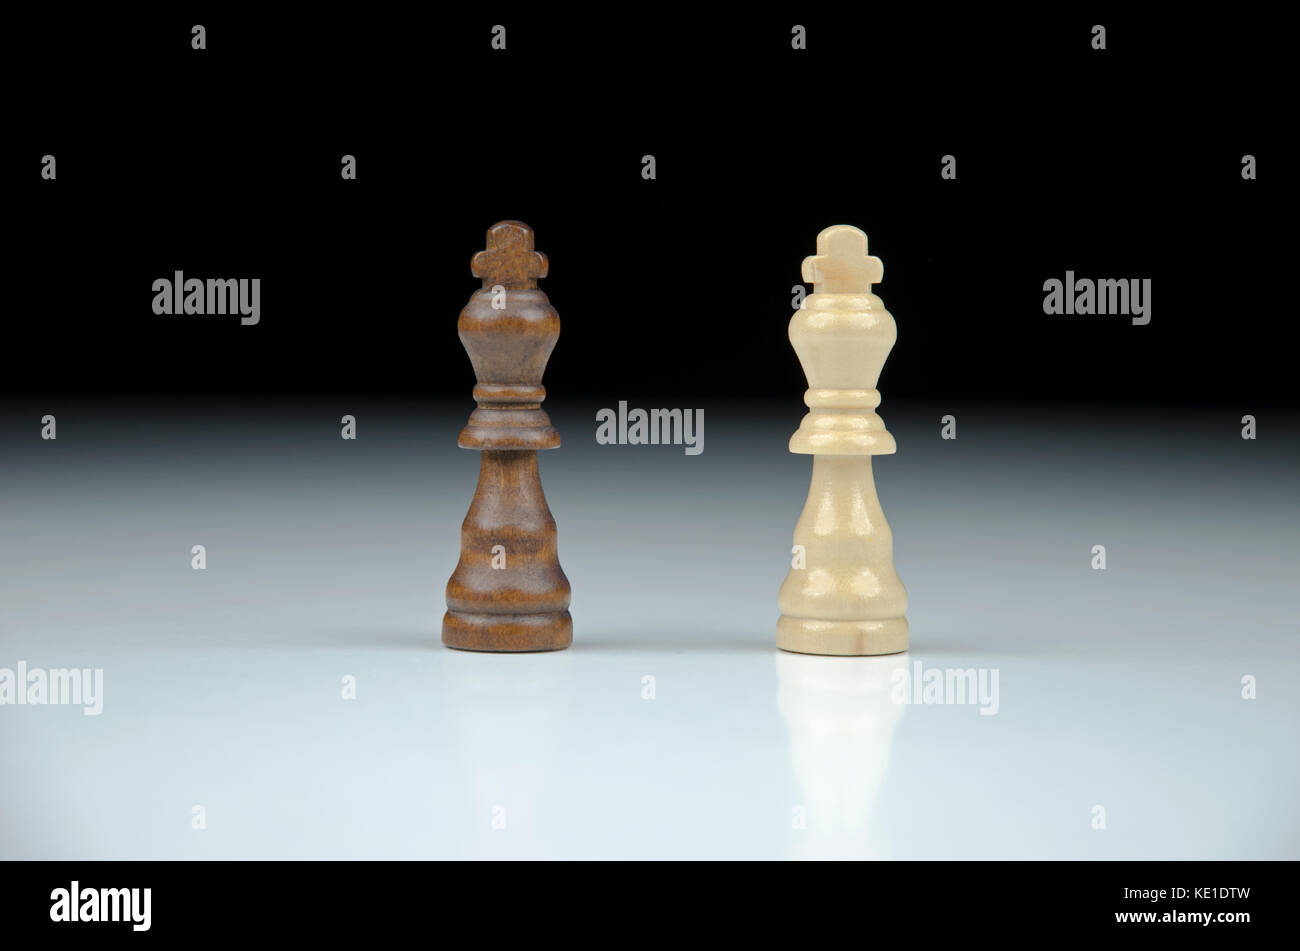 Close-up view of two chess king on blurred black and white background with reflection - Stock Image